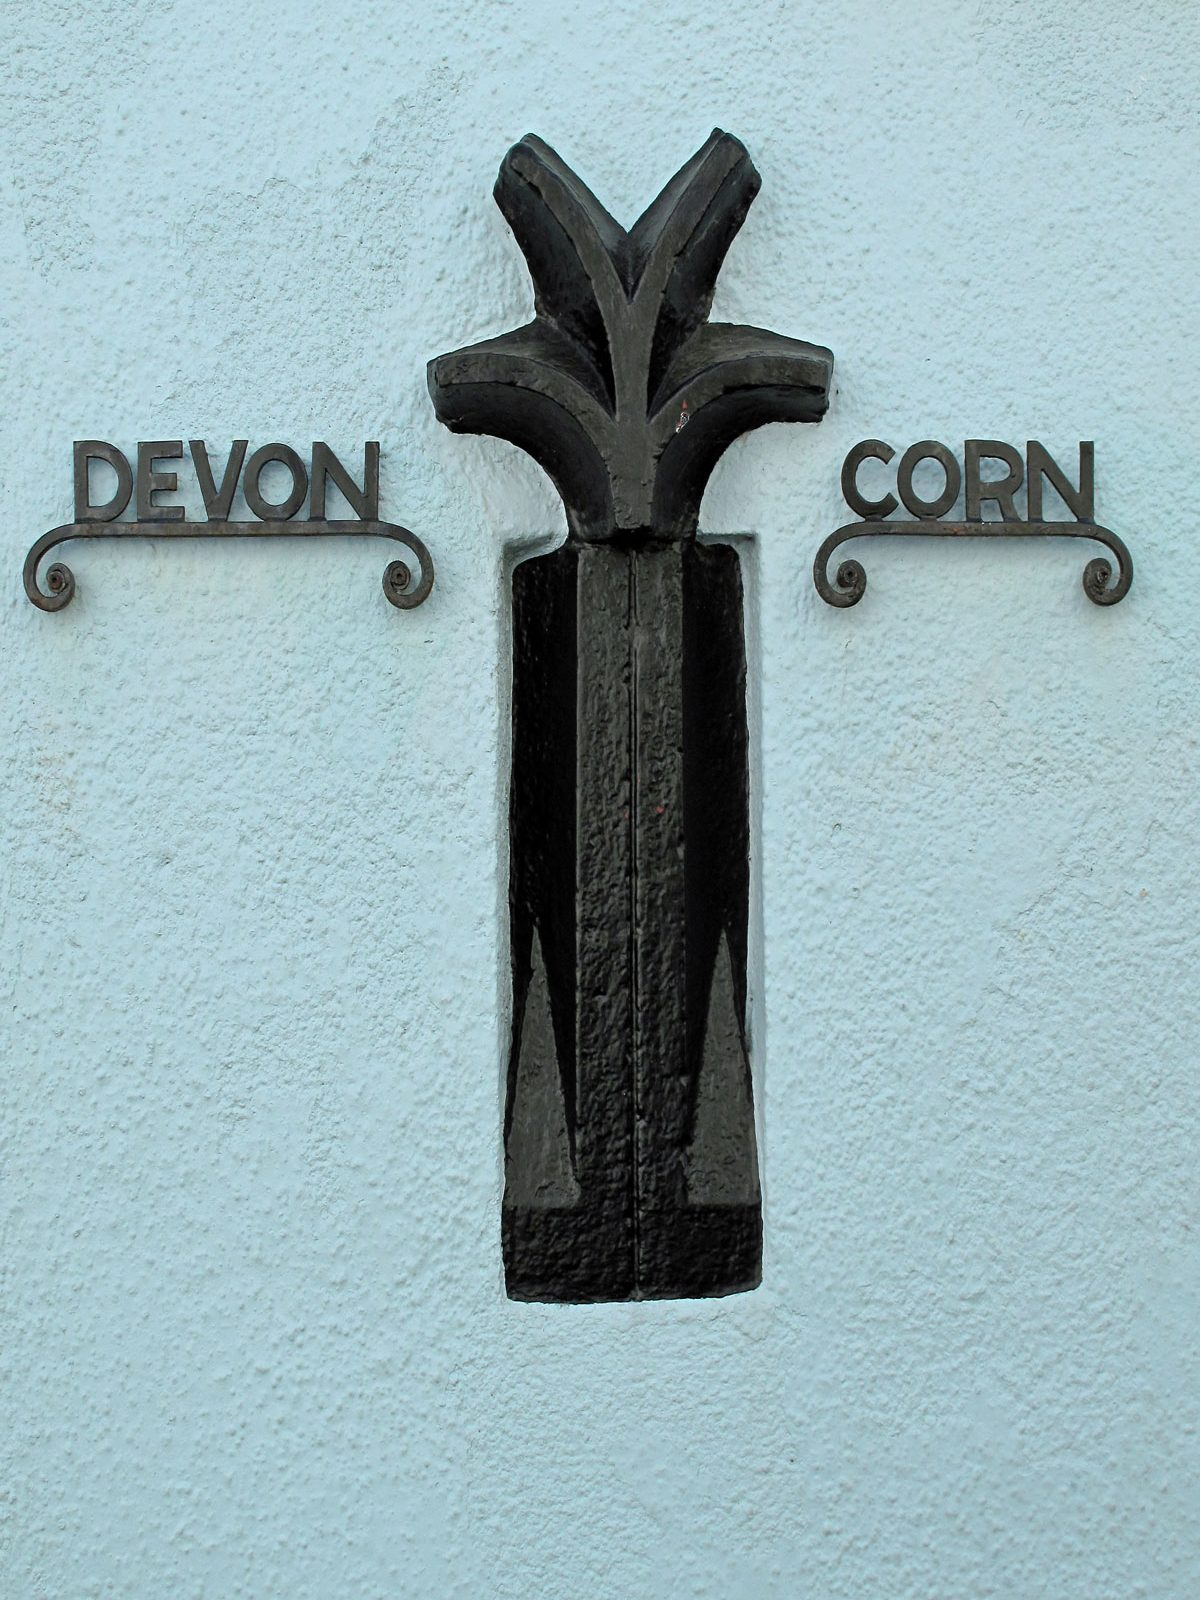 The Former Devon/Cornwall Boundary at Kingsand/Cawsand